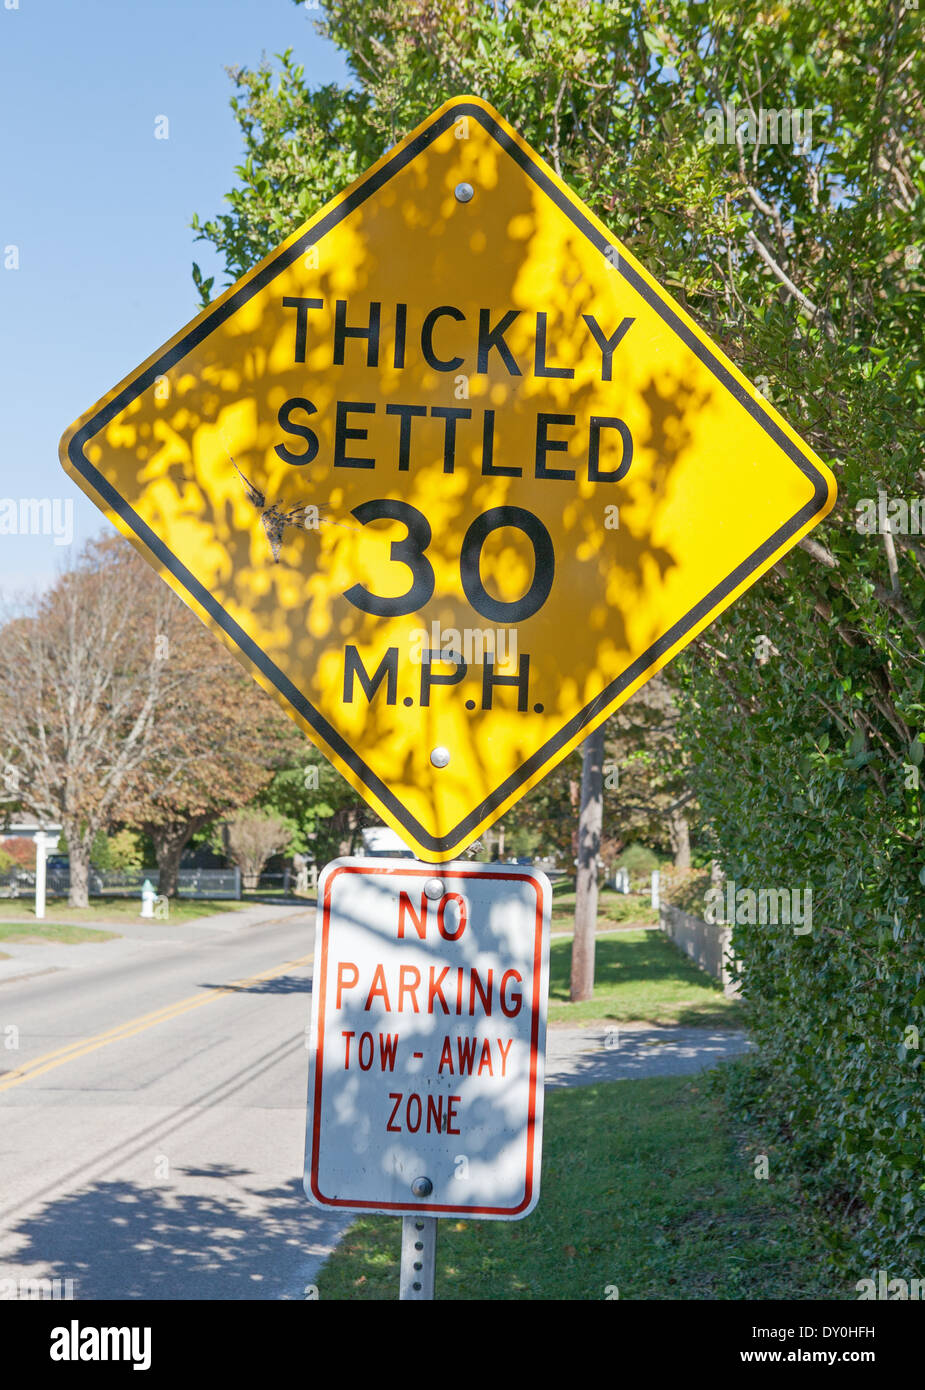 30 mph speed limit sign marked Thickly Settled - Falmouth, New England, USA Stock Photo